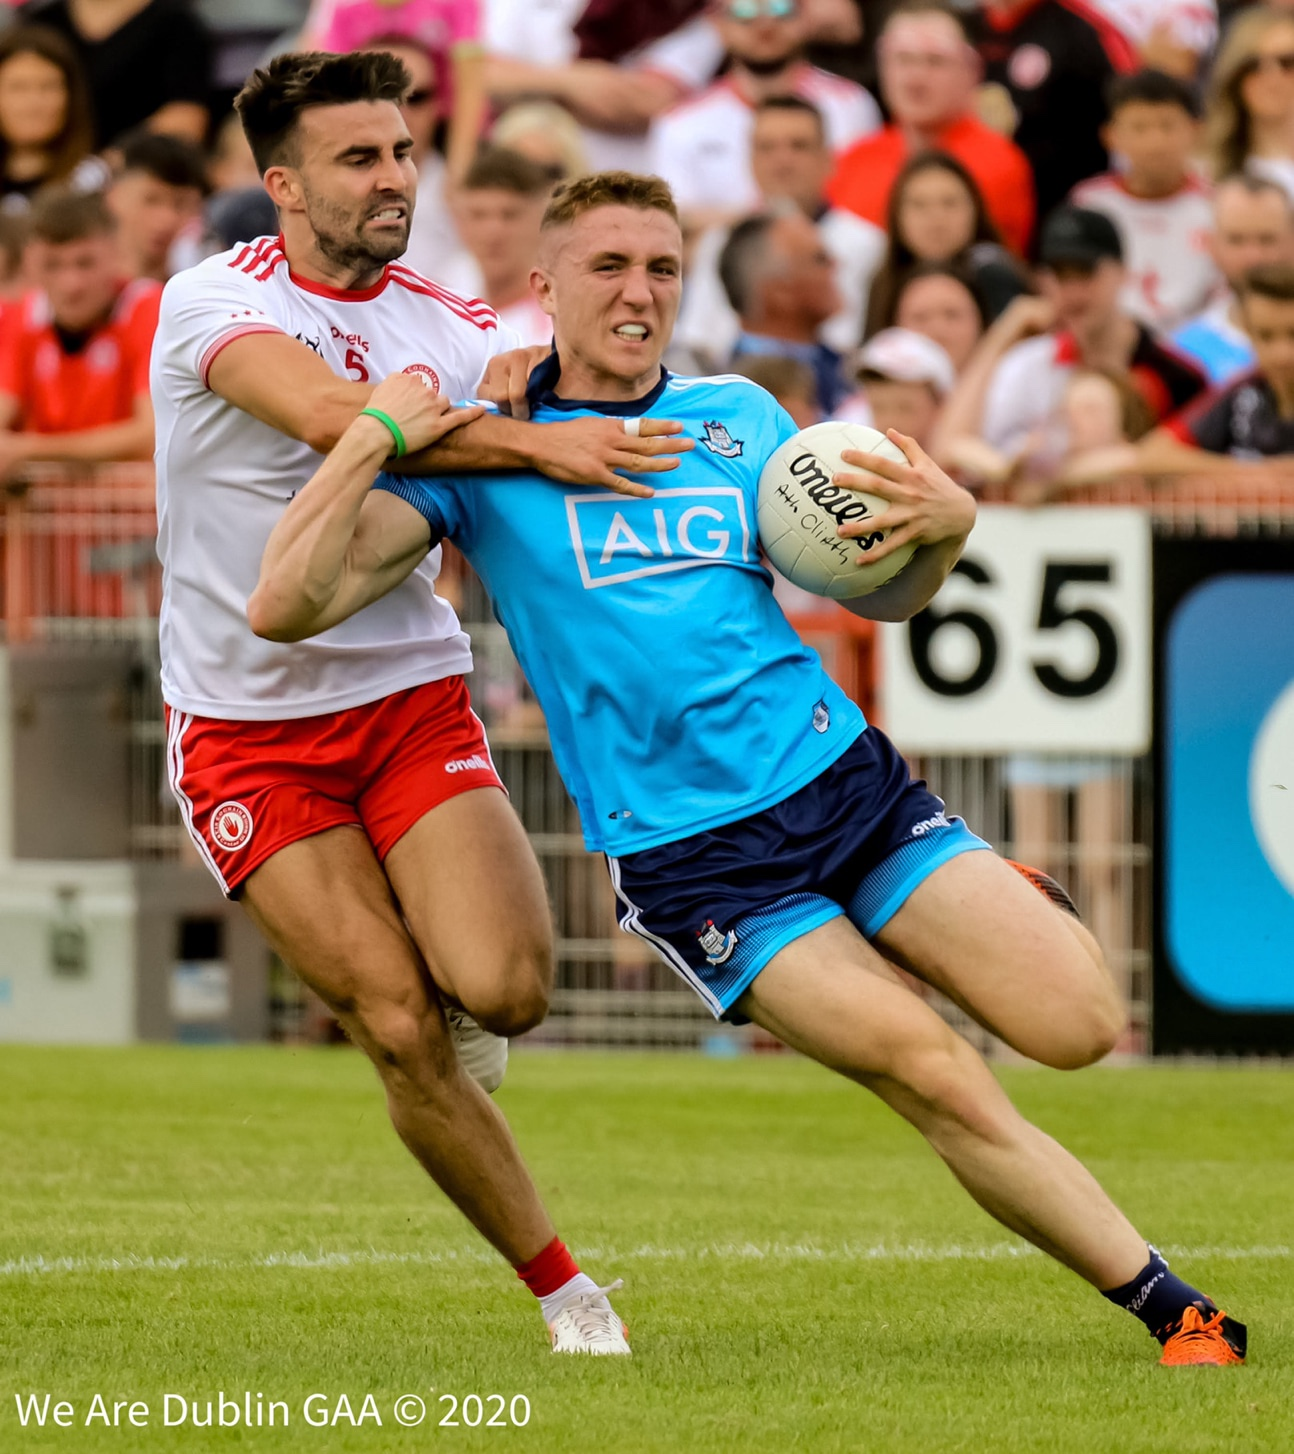 A Dublin player is tackled by a Tyrone player during a championship match, the GPA have stated they will not accept any situation on a return to playing games after Covid 19 restrictions are lifted where players or their families are put at undue health risk